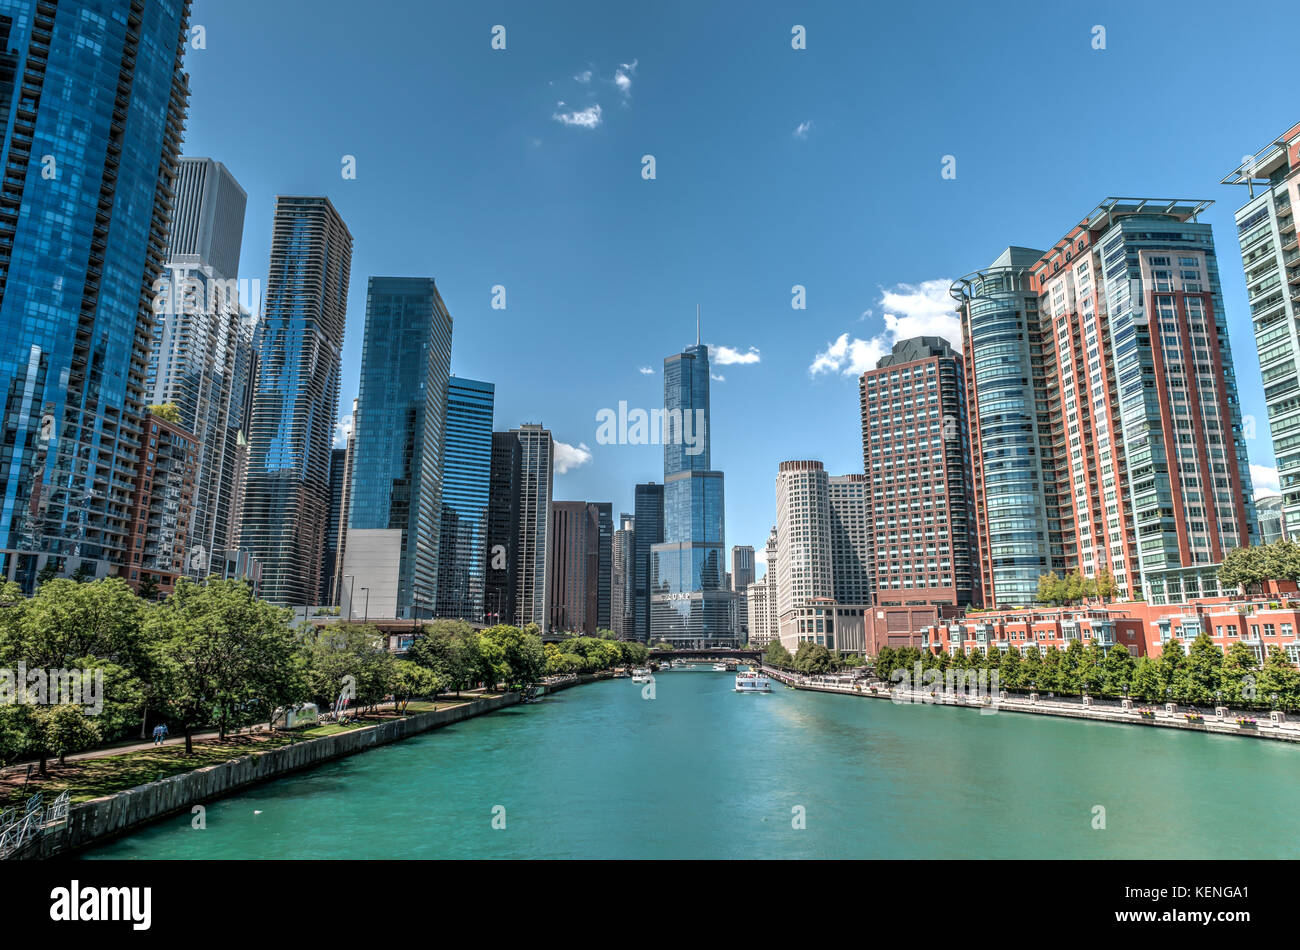 View of downtown Chicago, Illinois, USA, from DuSable Bridge facing the Trump International Hotel and Tower - Stock Image